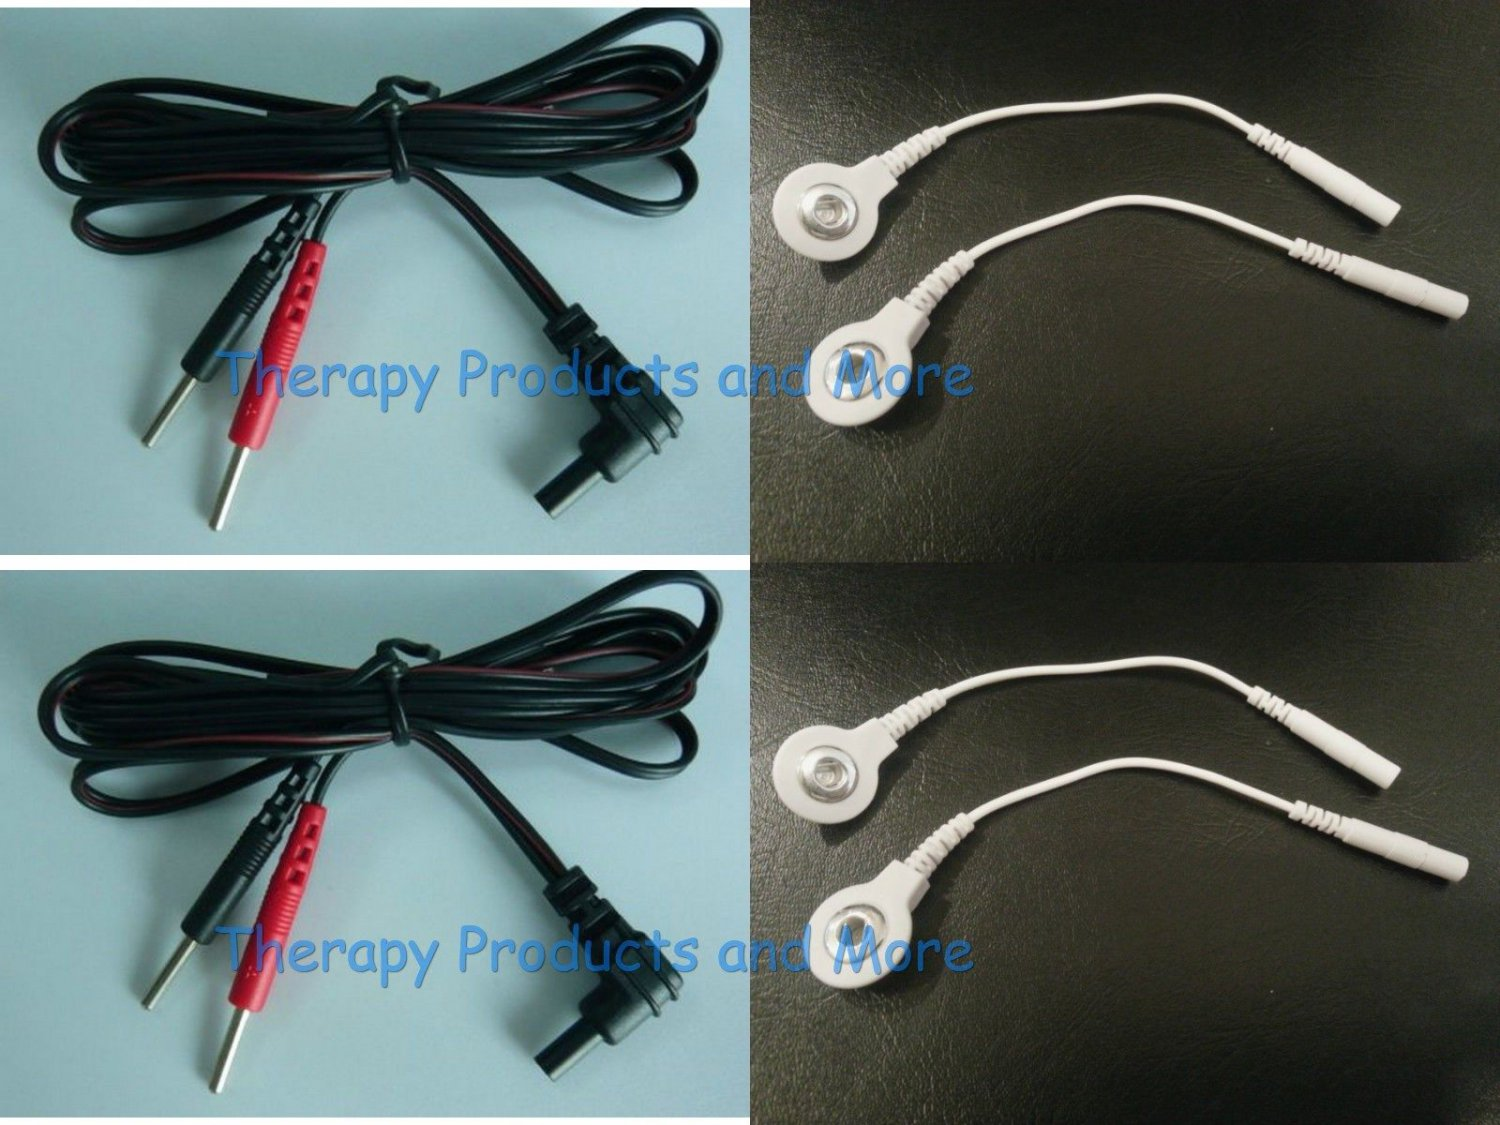 Replacement Electrode Lead Wires Intensity 10, Twin Stim -Use Snap or Pin Pads!